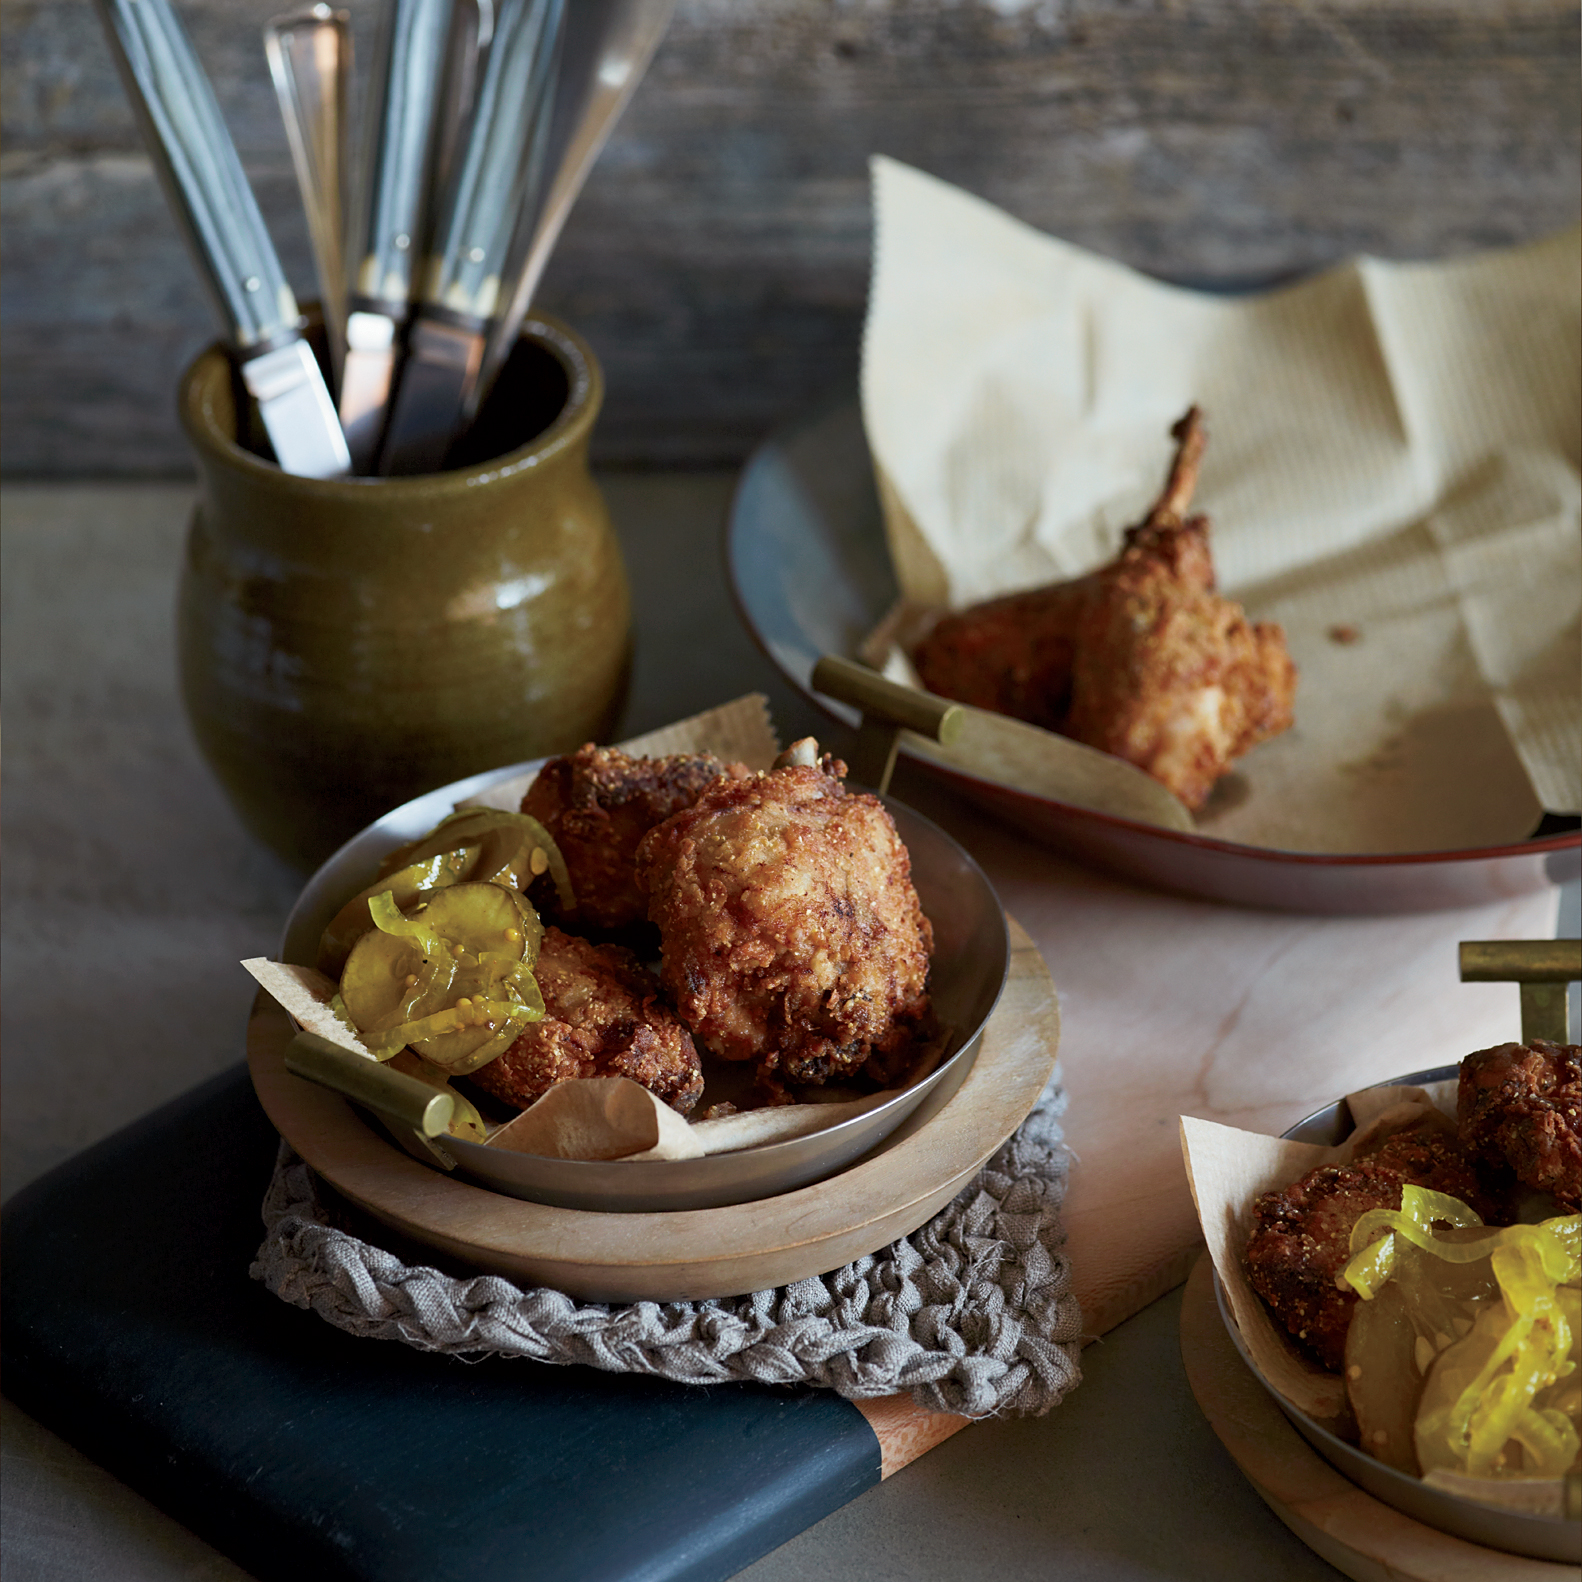 Cornmeal-Crusted Chicken-Fried Rabbit